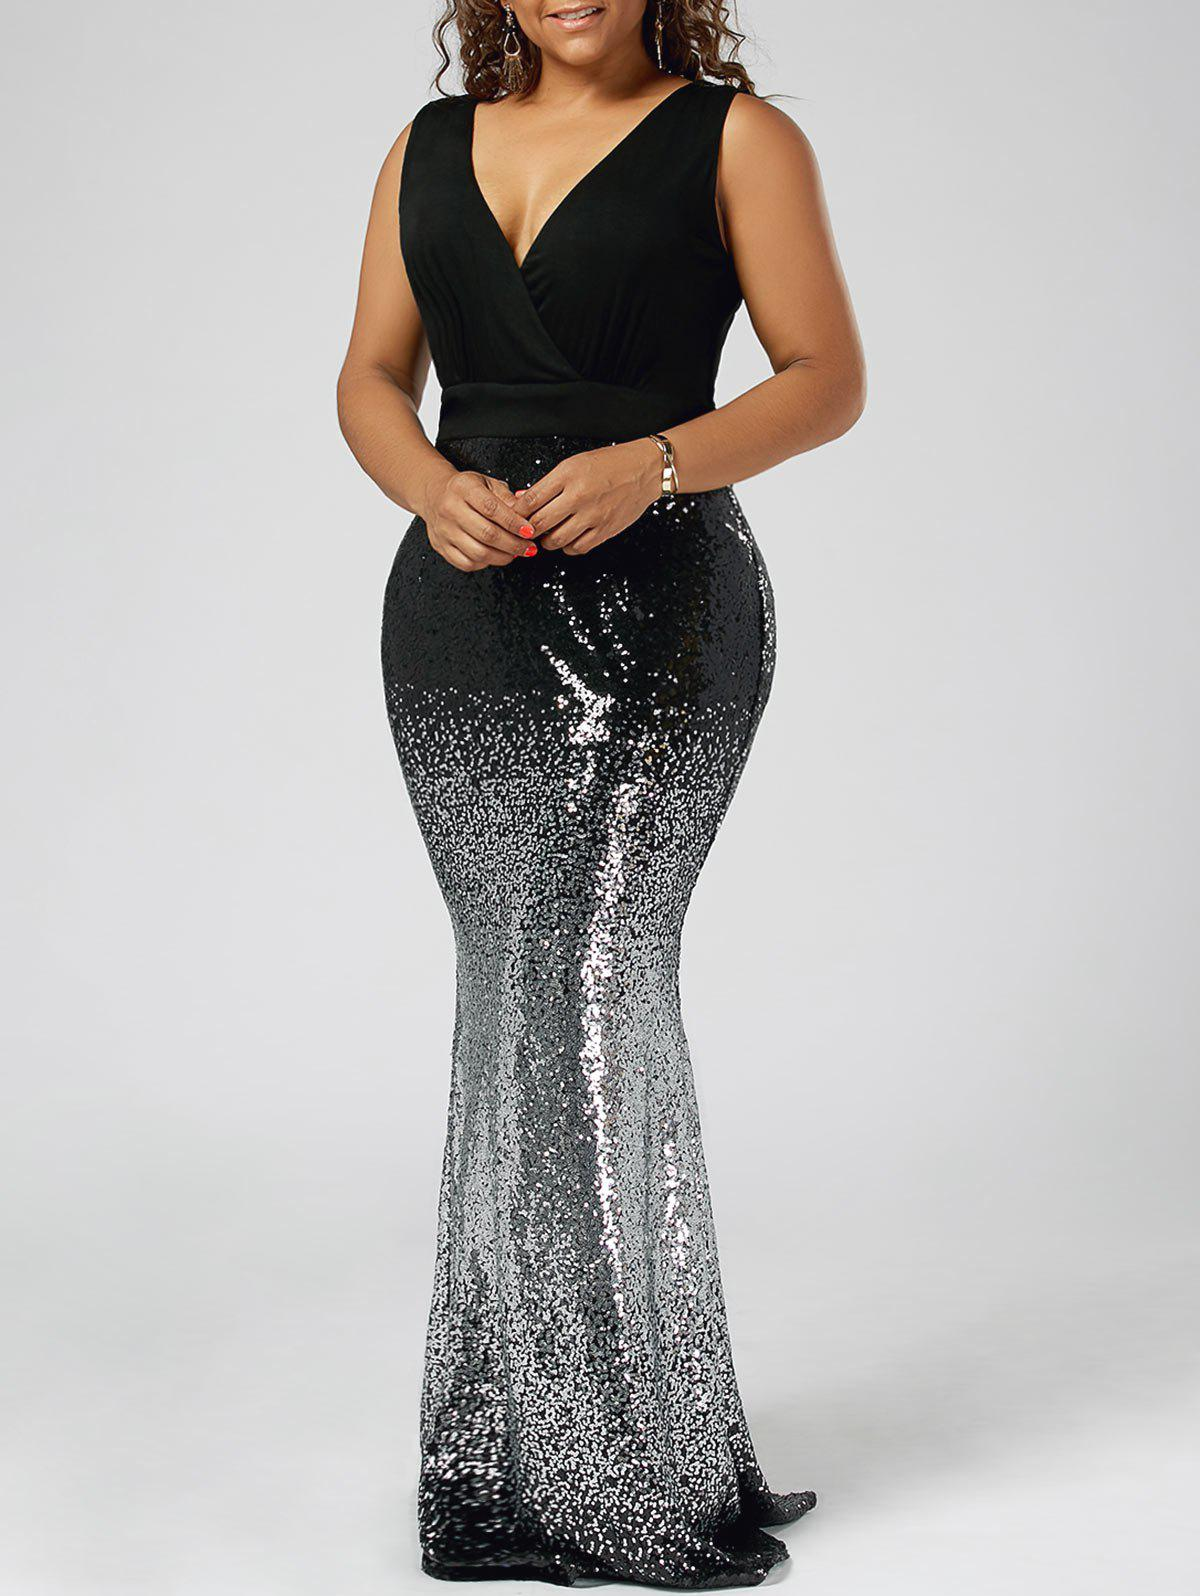 8af3925c41b 2019 Plus Size Sequins Fishtail Maxi Evening Prom Dress